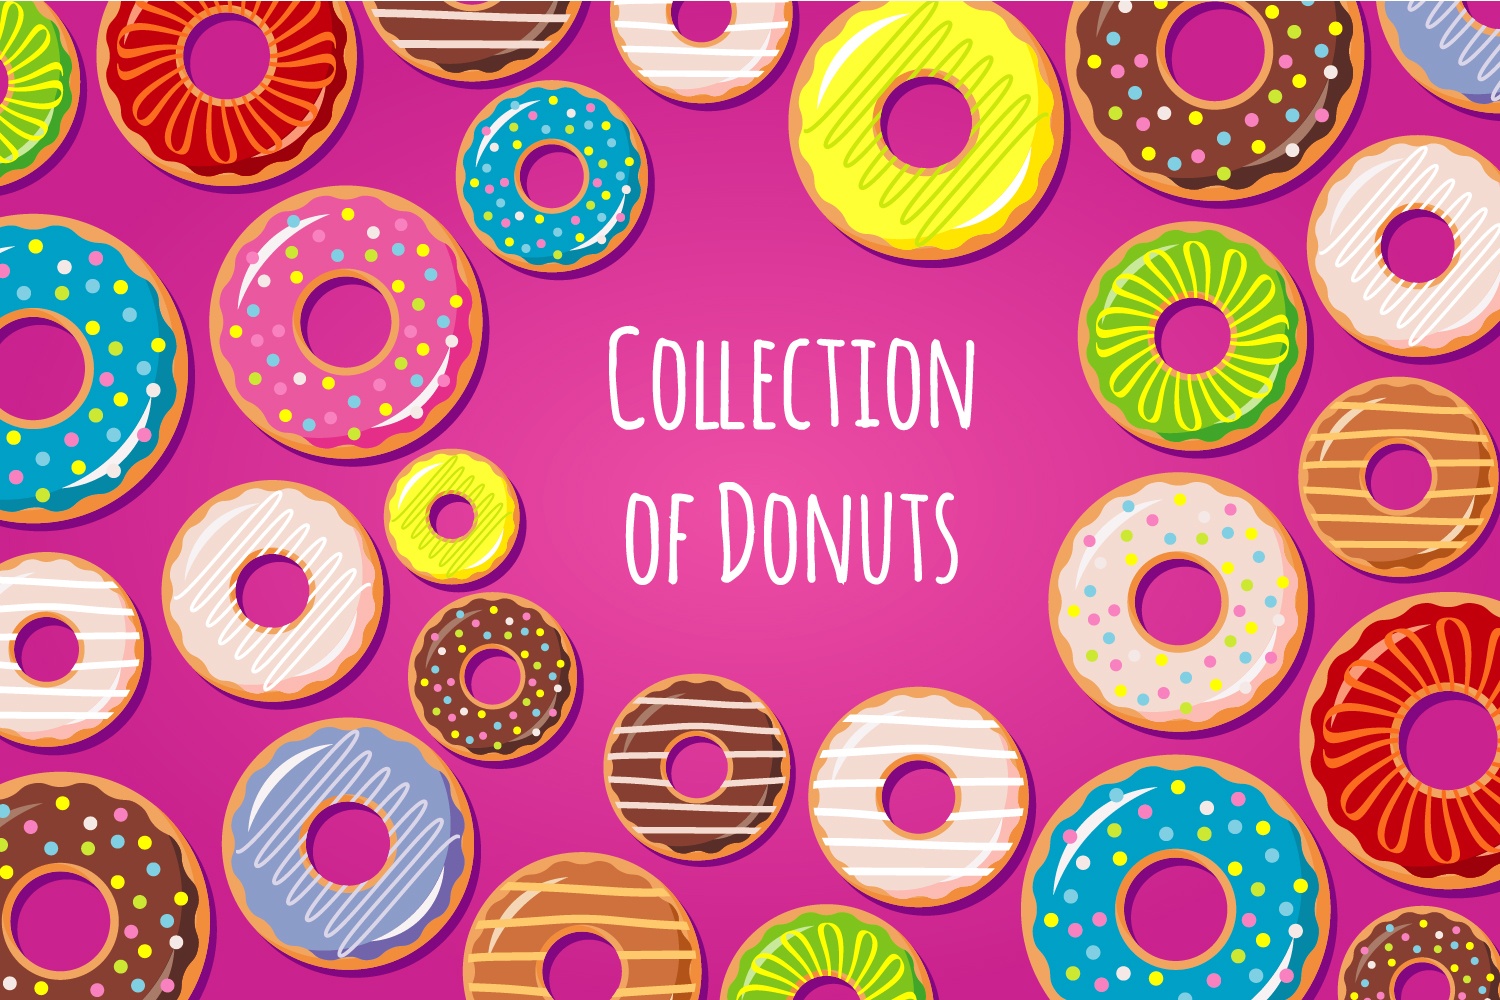 Collection Of Donuts example image 1